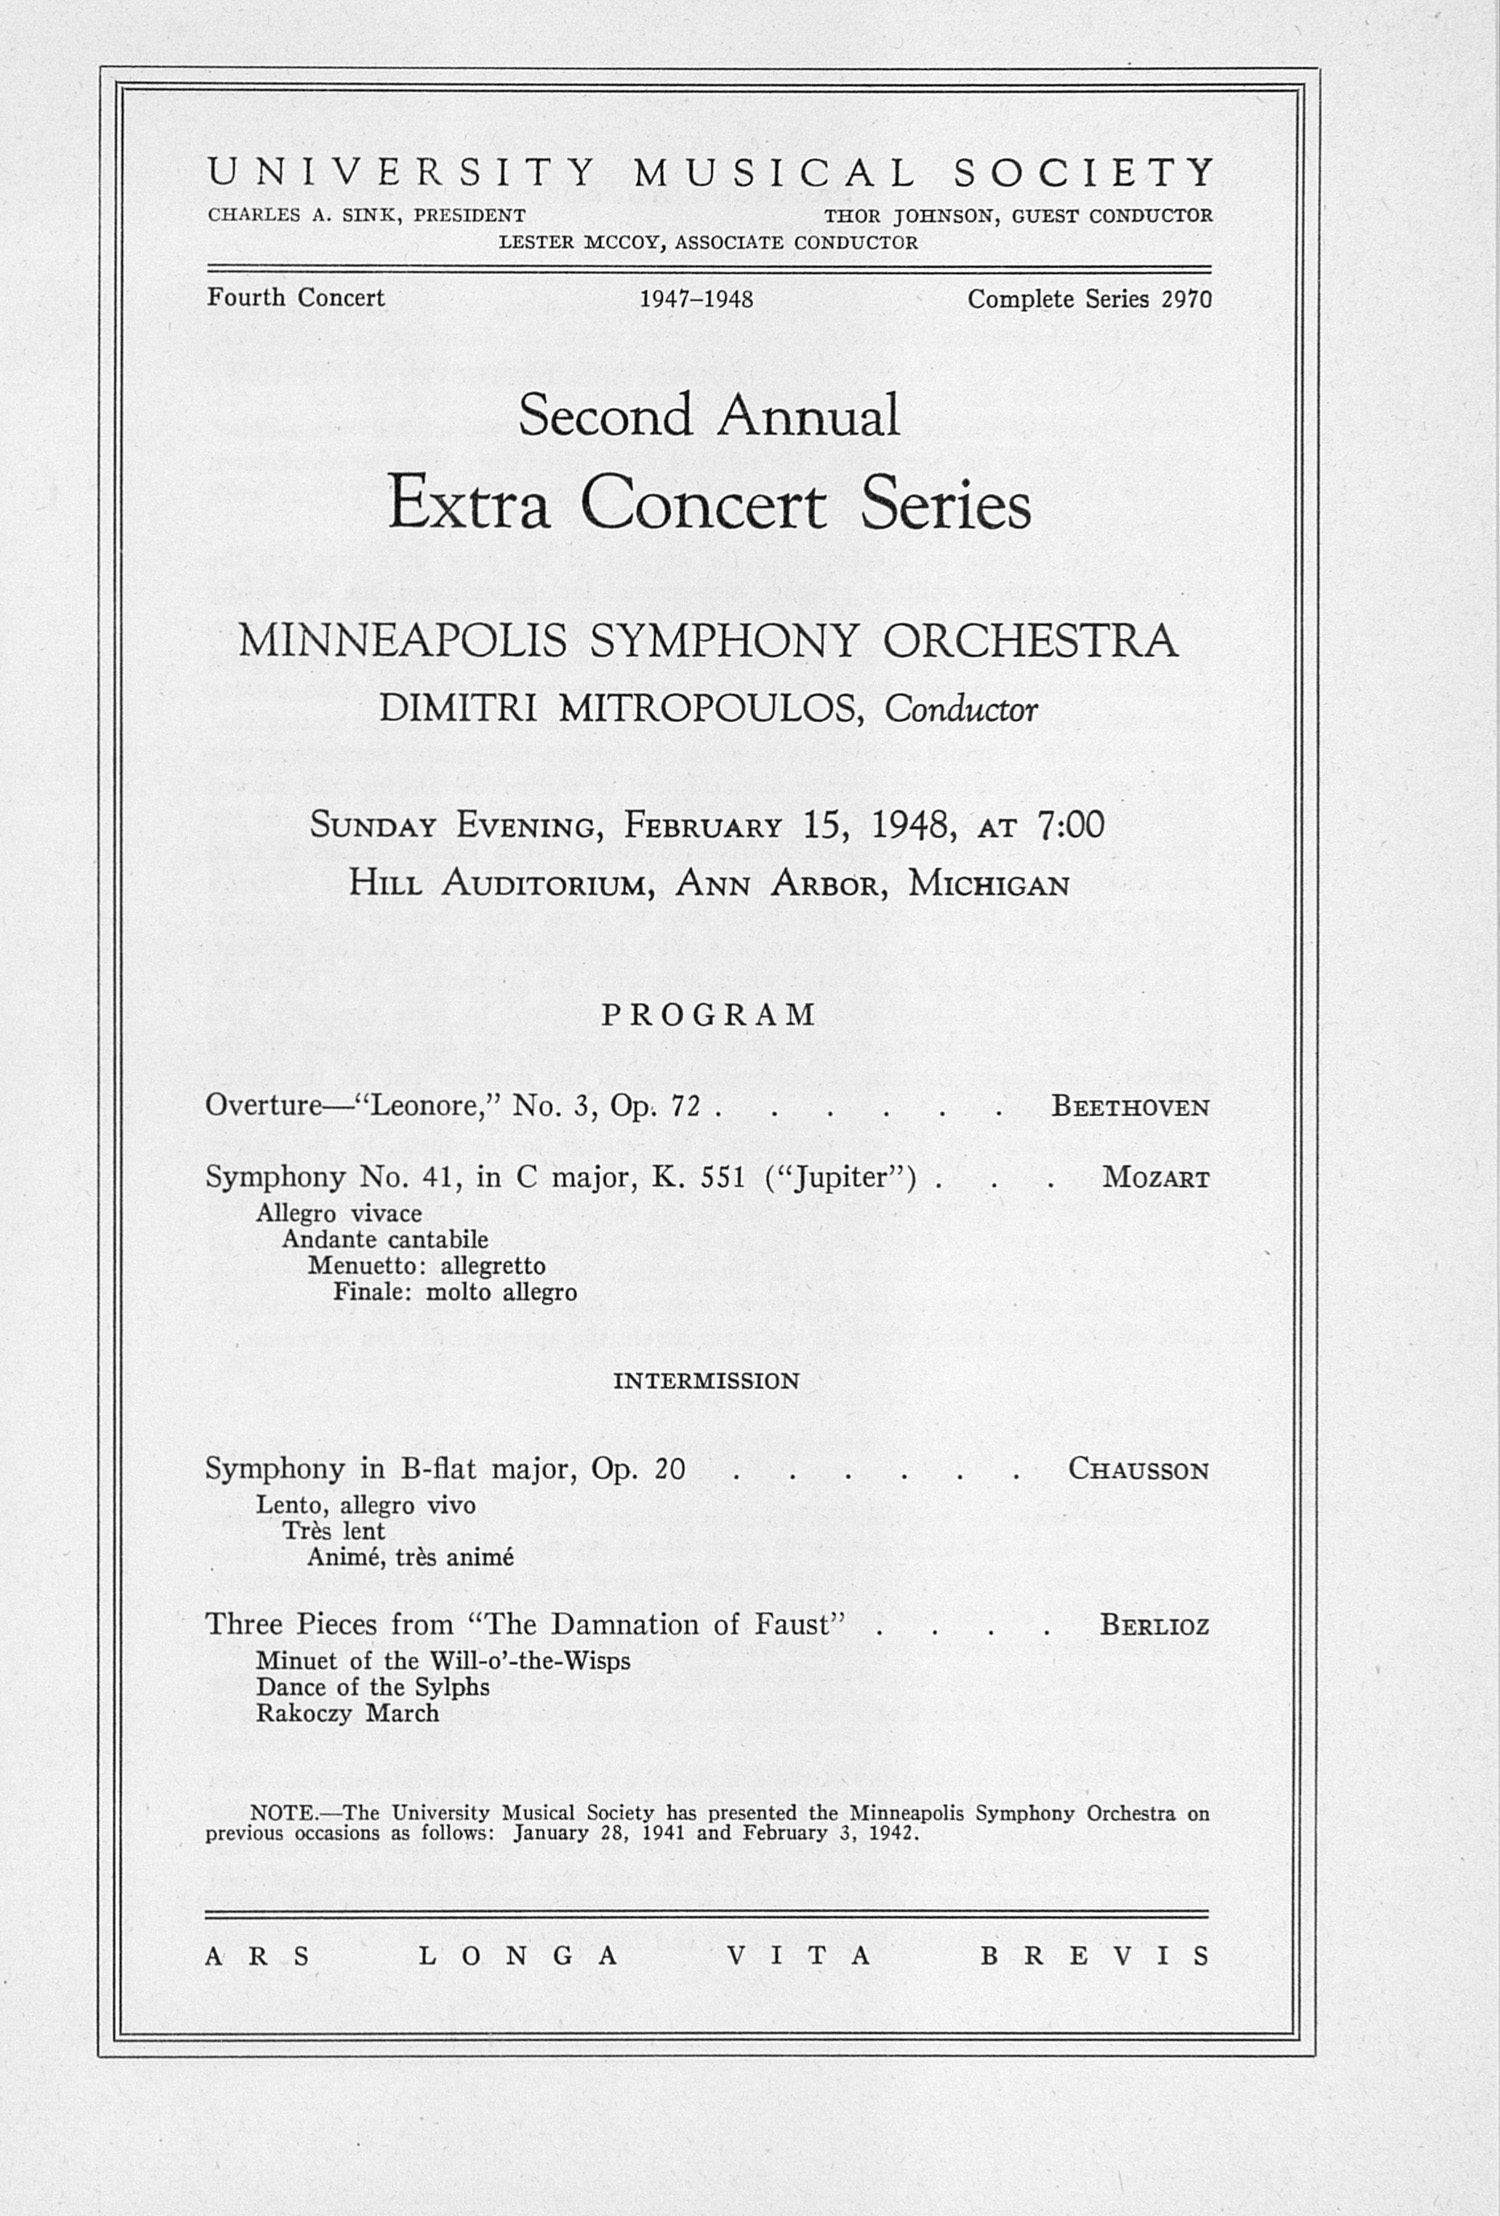 UMS Concert Program, February 15, 1948: Second Annual Extra Concert Series -- Minneapolis Symphony Orchestra image